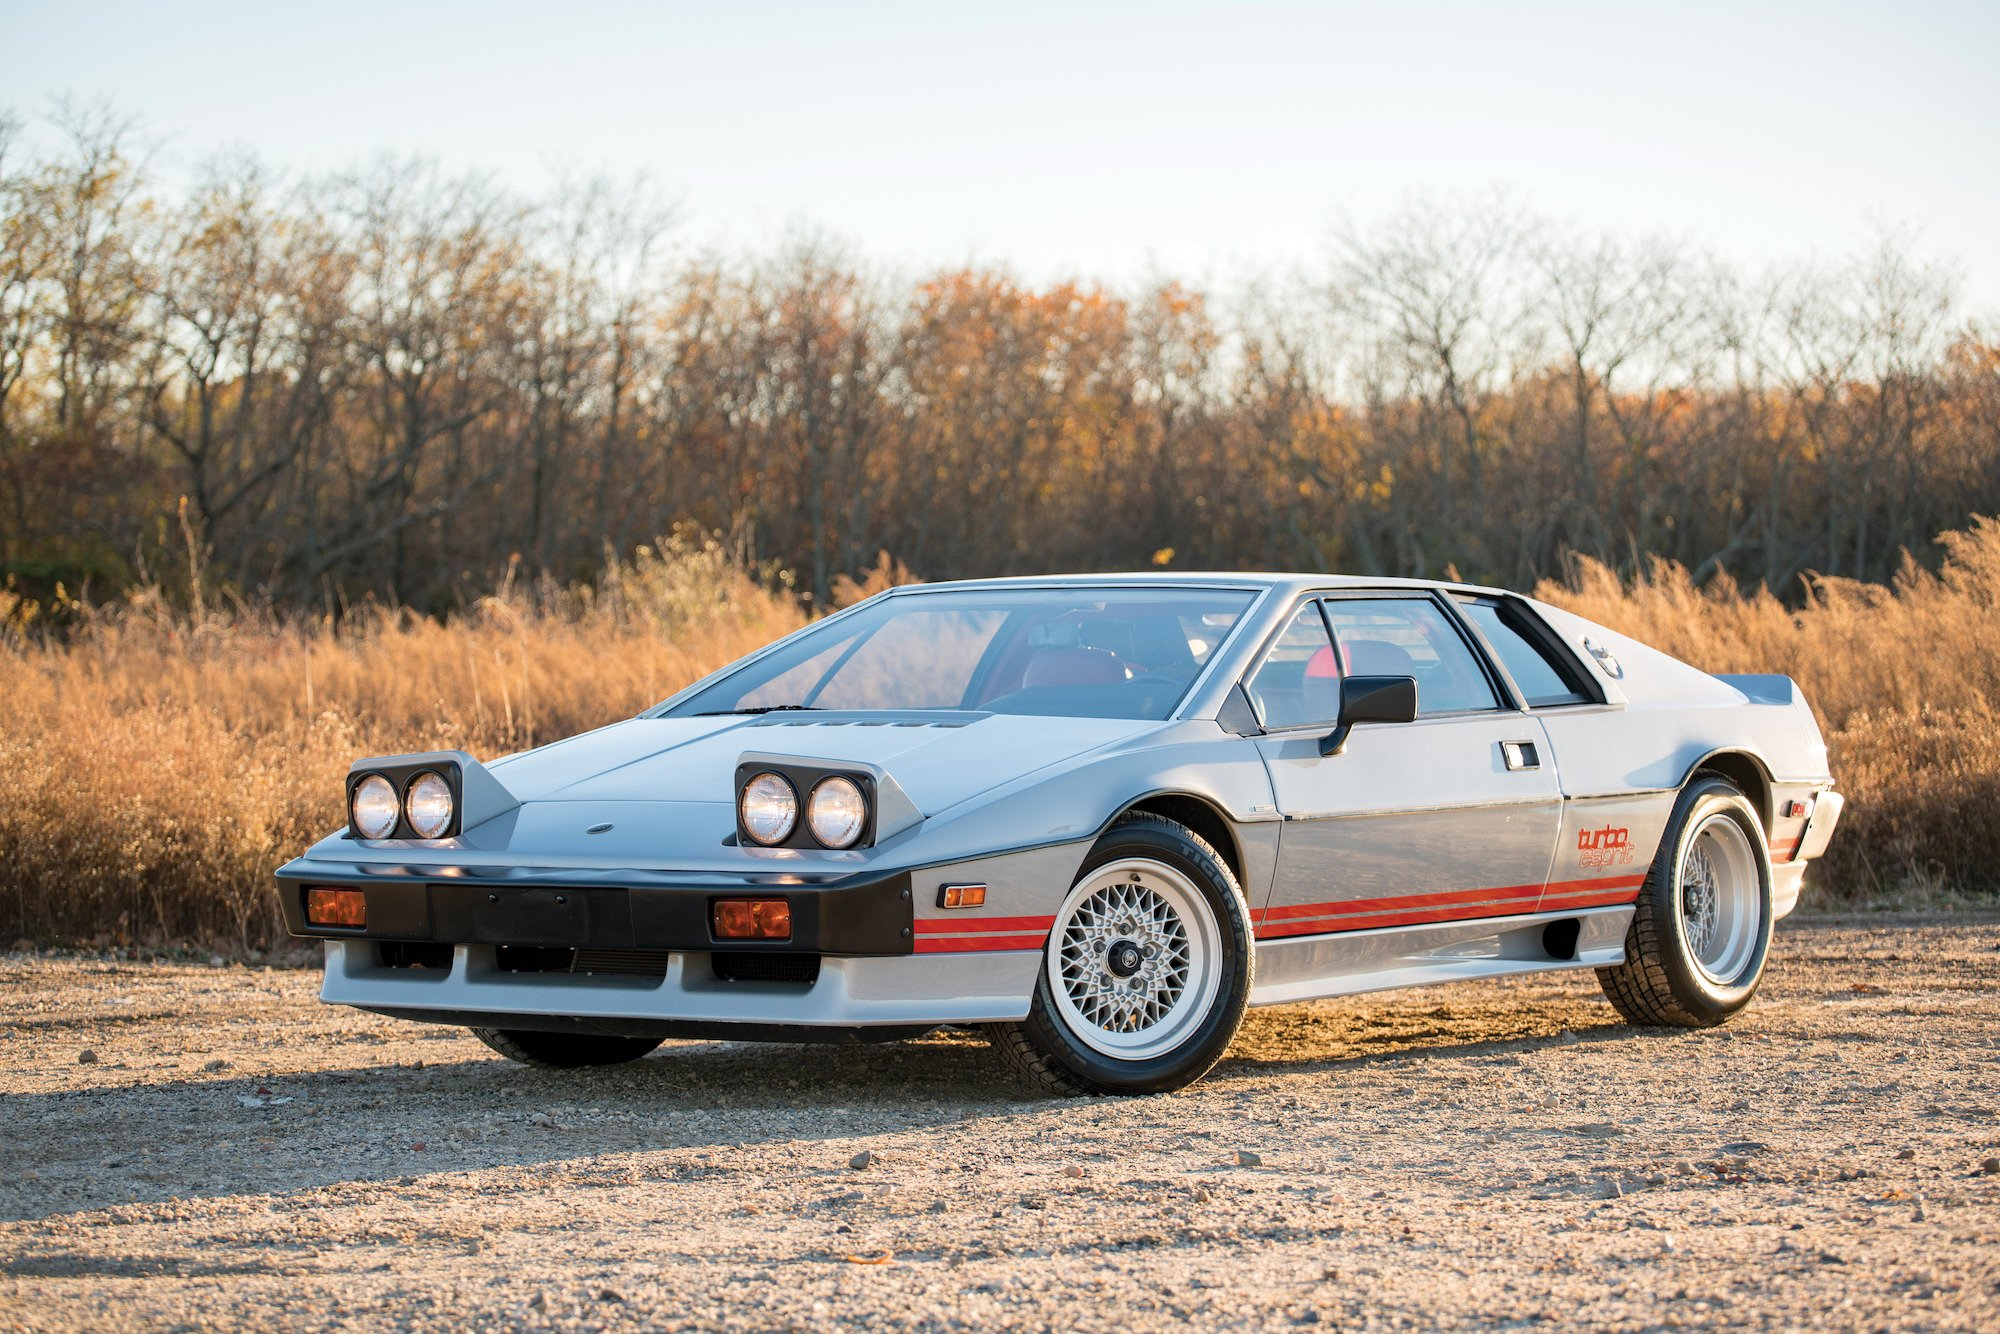 Lotus Esprit Turbo 1983